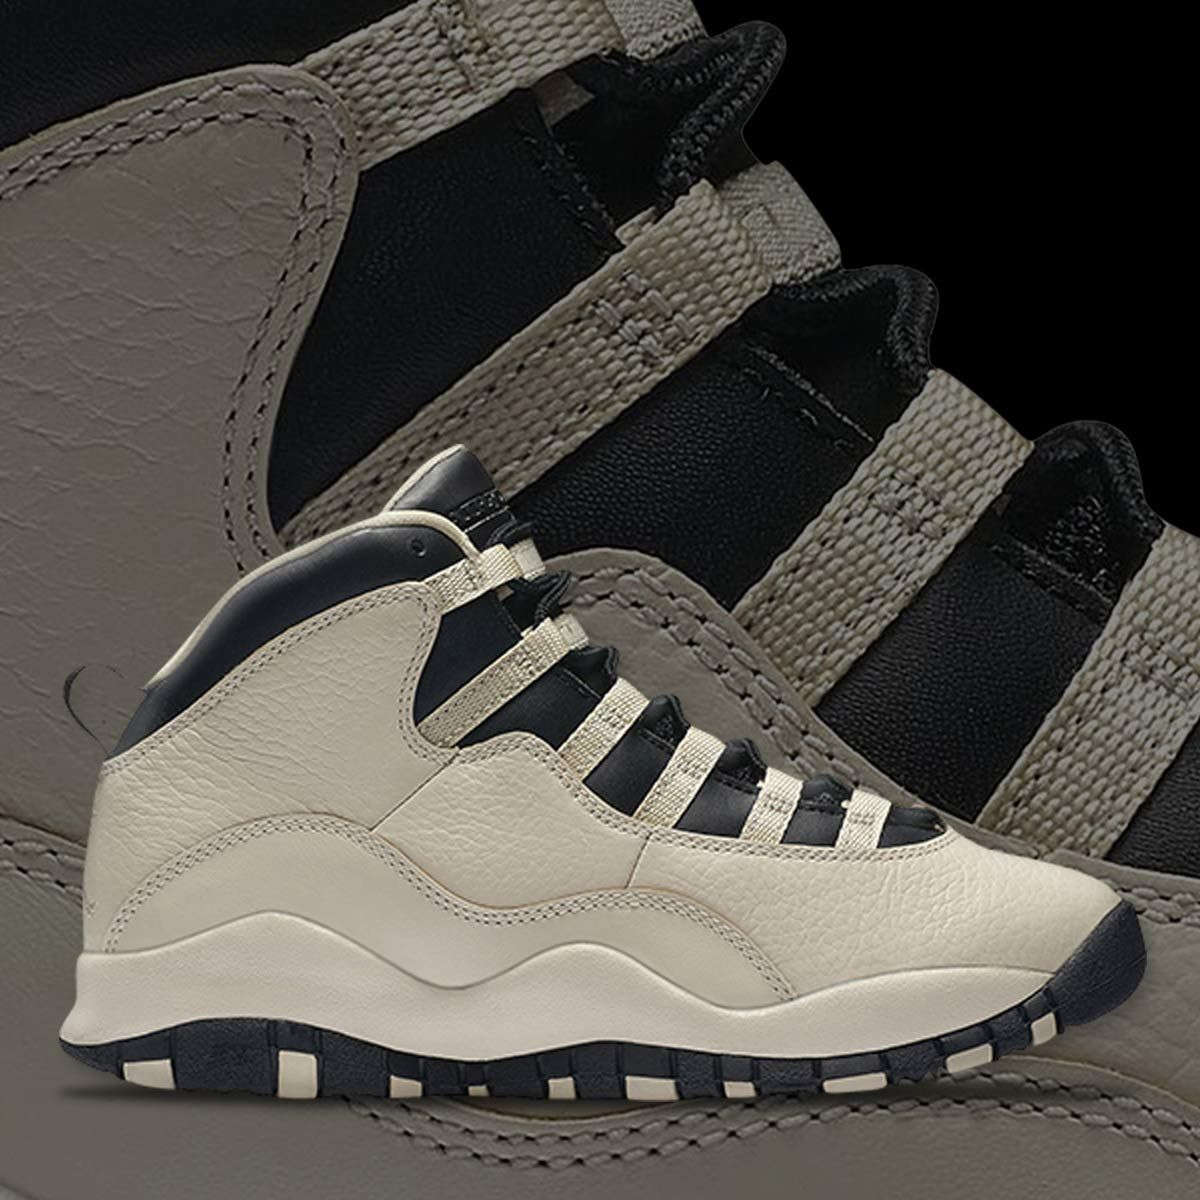 b88eed79447 This AJ 10 is for the girl who wants clean